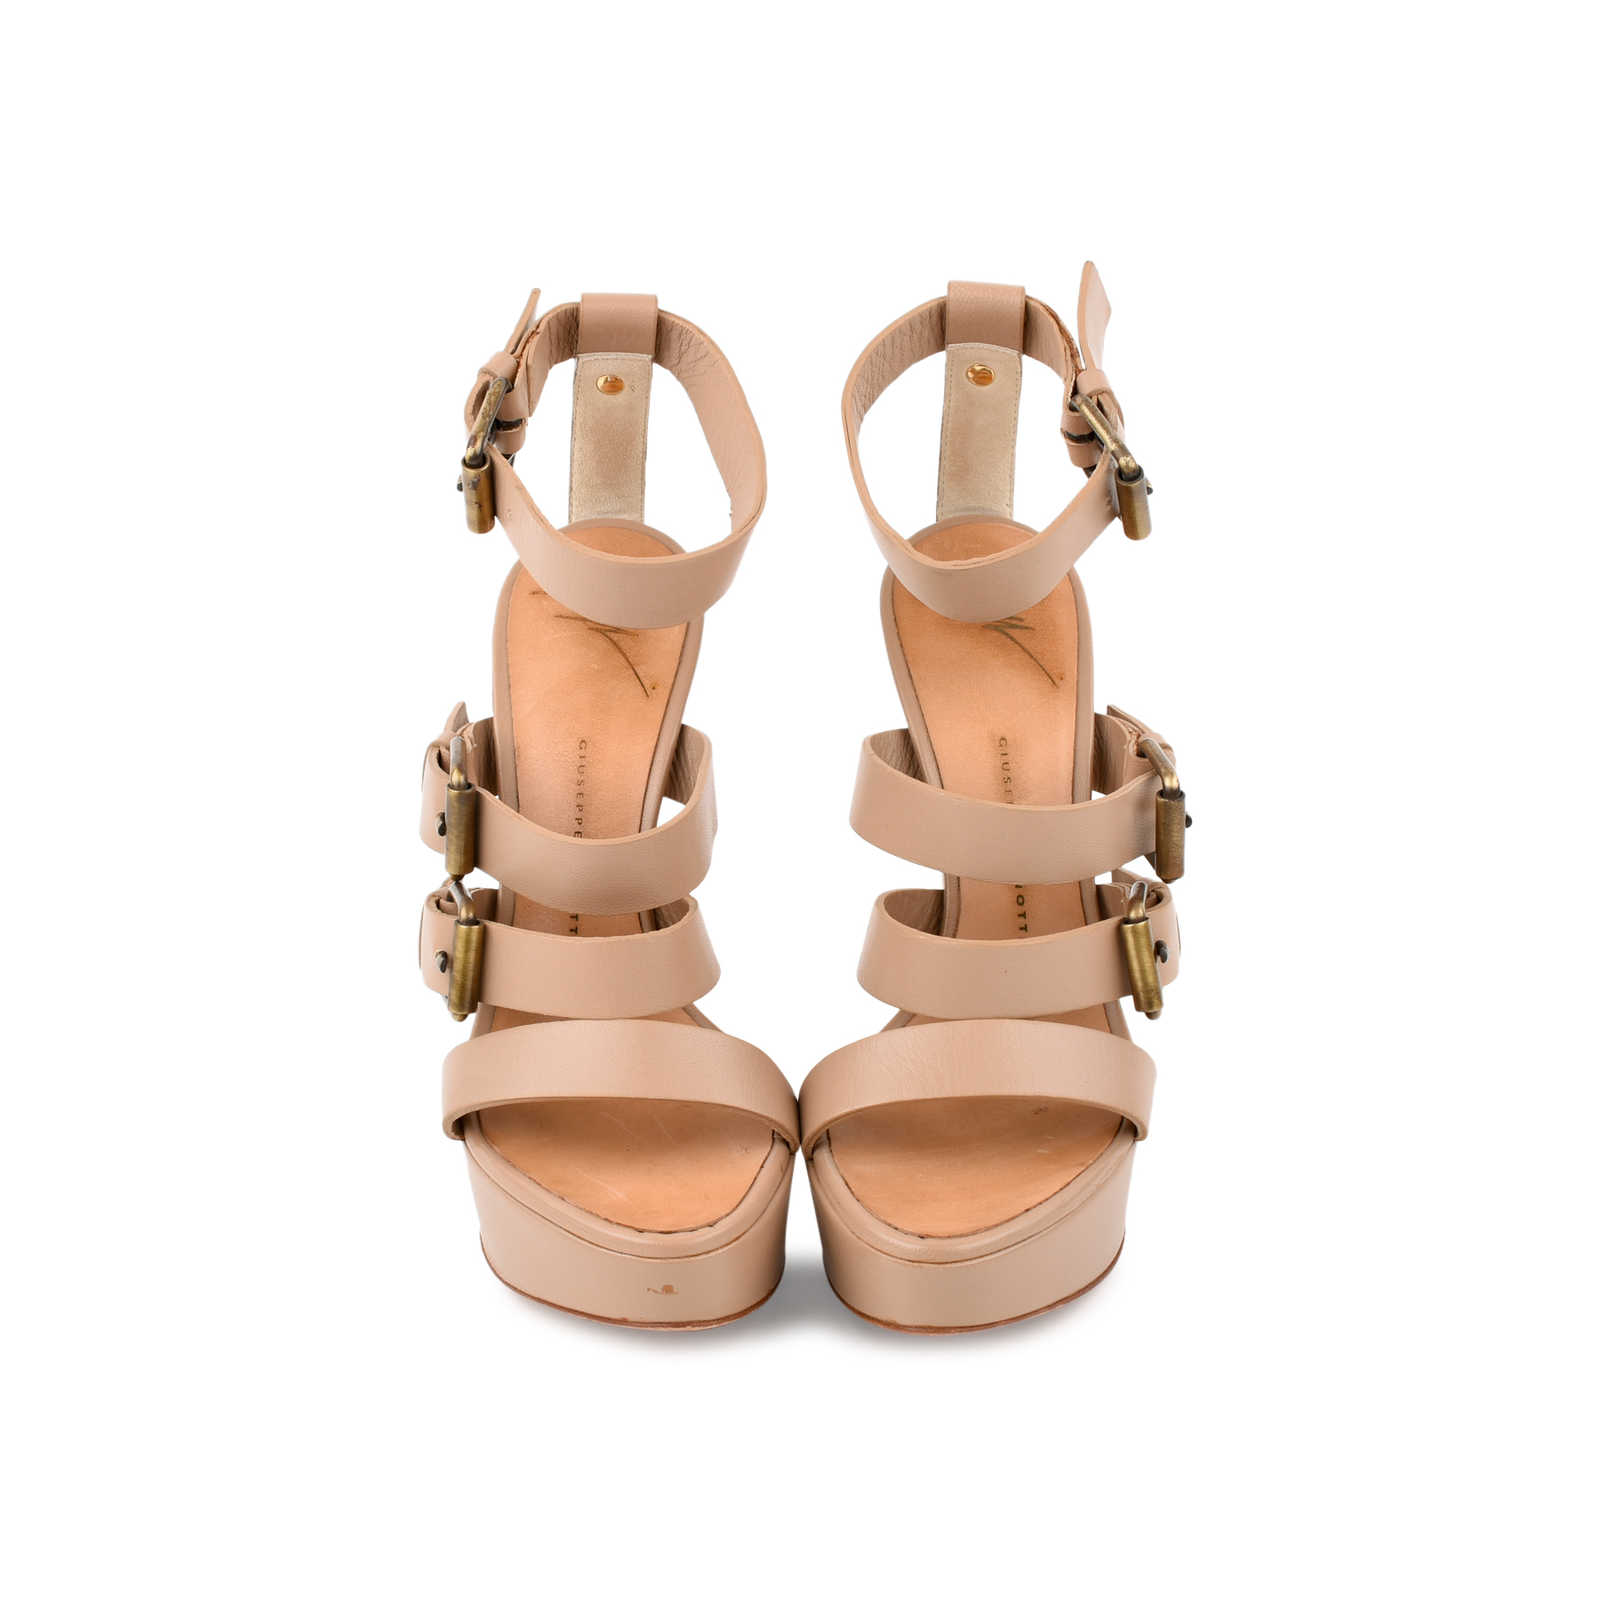 3fb0f4d93702 Authentic Second Hand Giuseppe Zanotti Strappy Buckle Sandals (PSS-080-00214)  ...